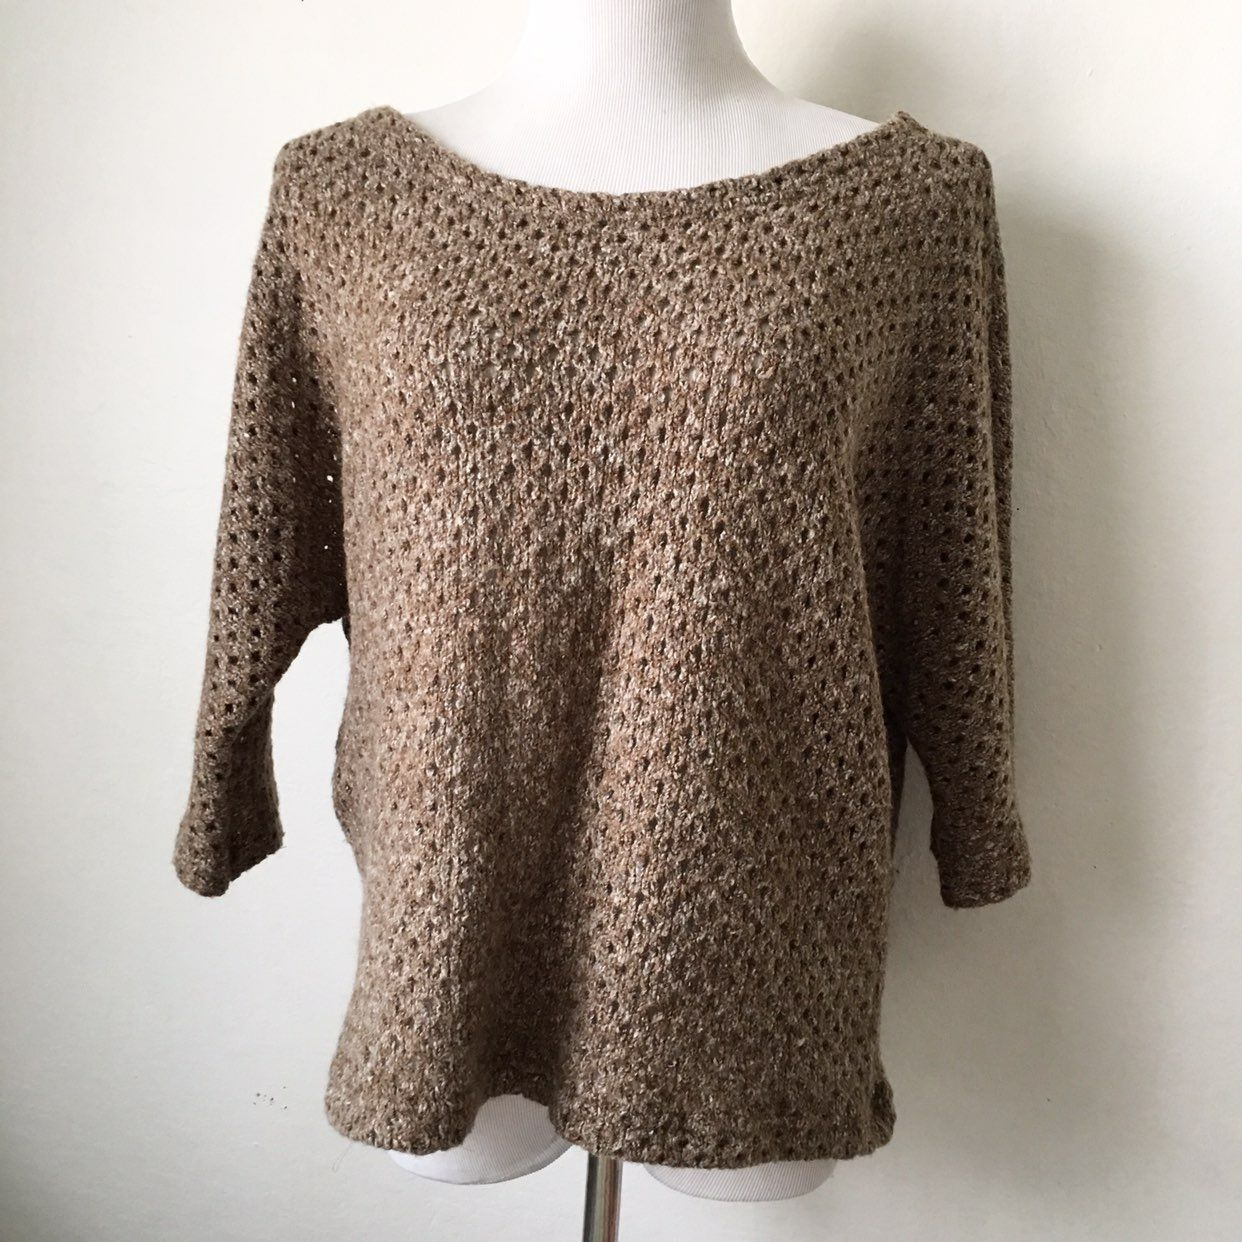 PIKO 1988 Brown Cable Knit Sweater - Mercari: BUY & SELL THINGS ...